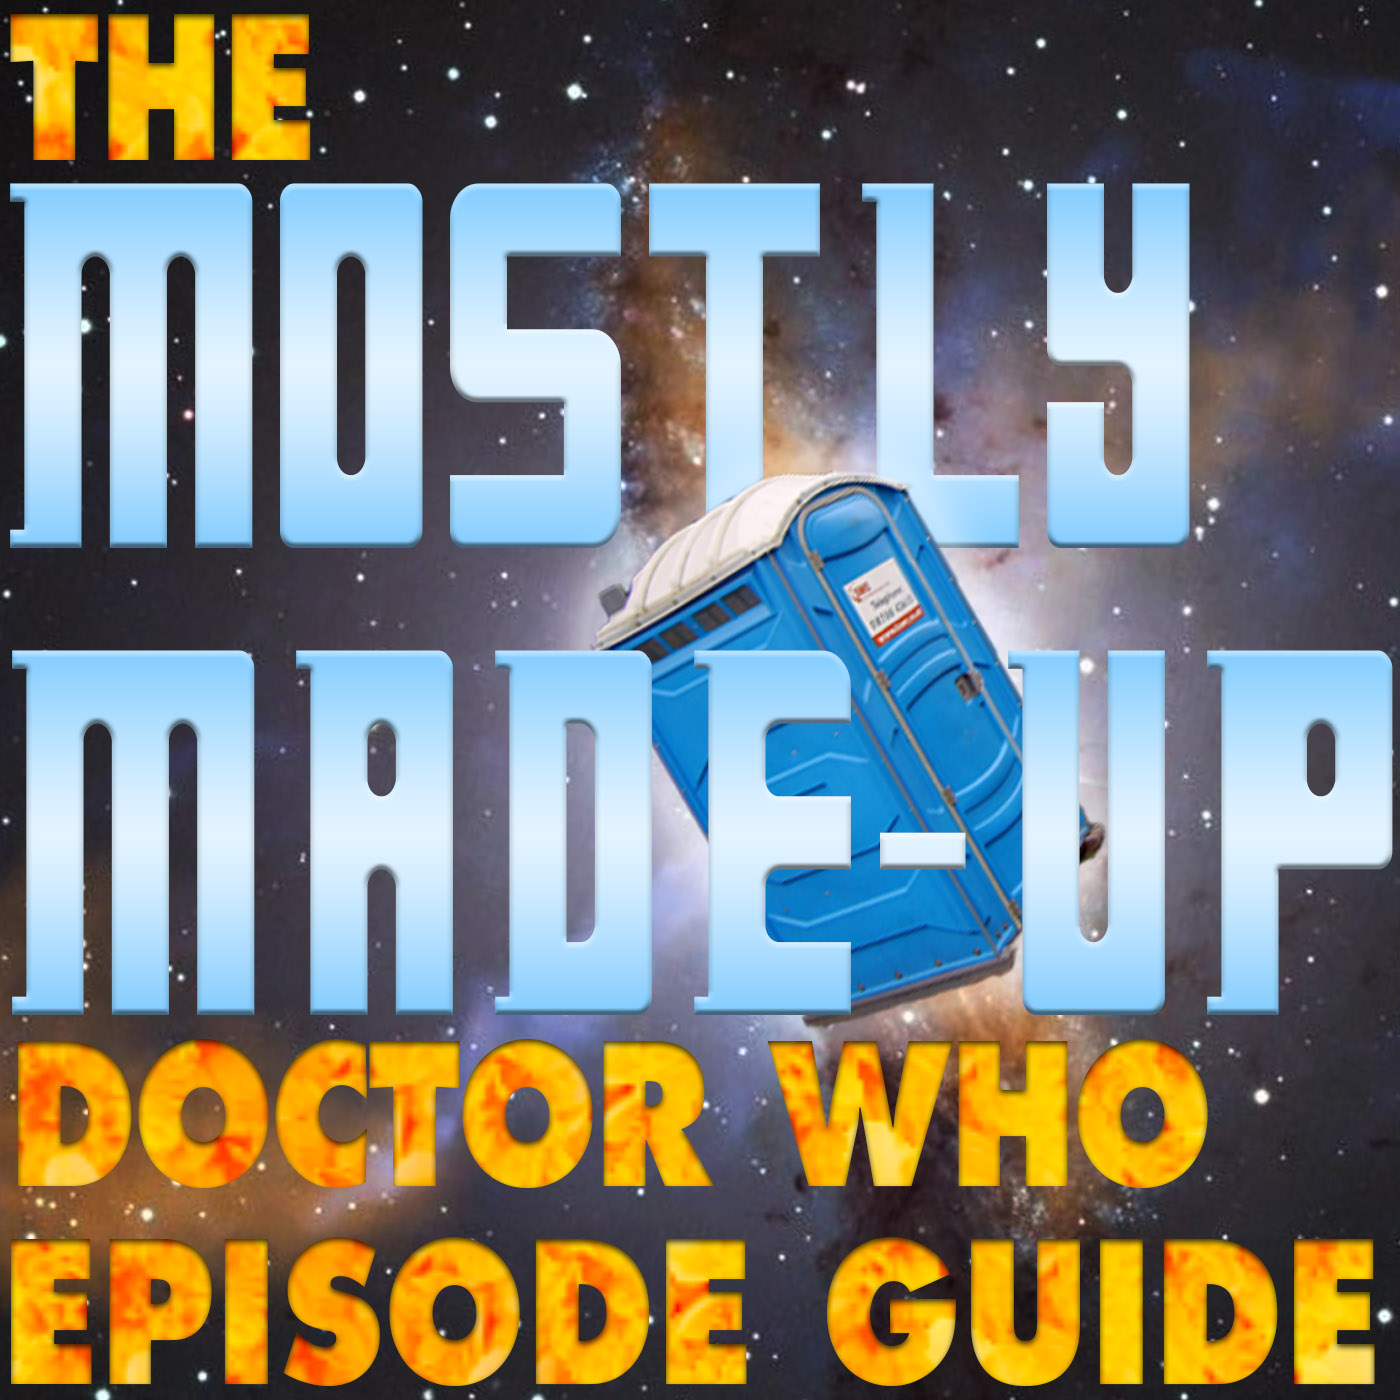 The Mostly Made-Up Doctor Who Episode Guide